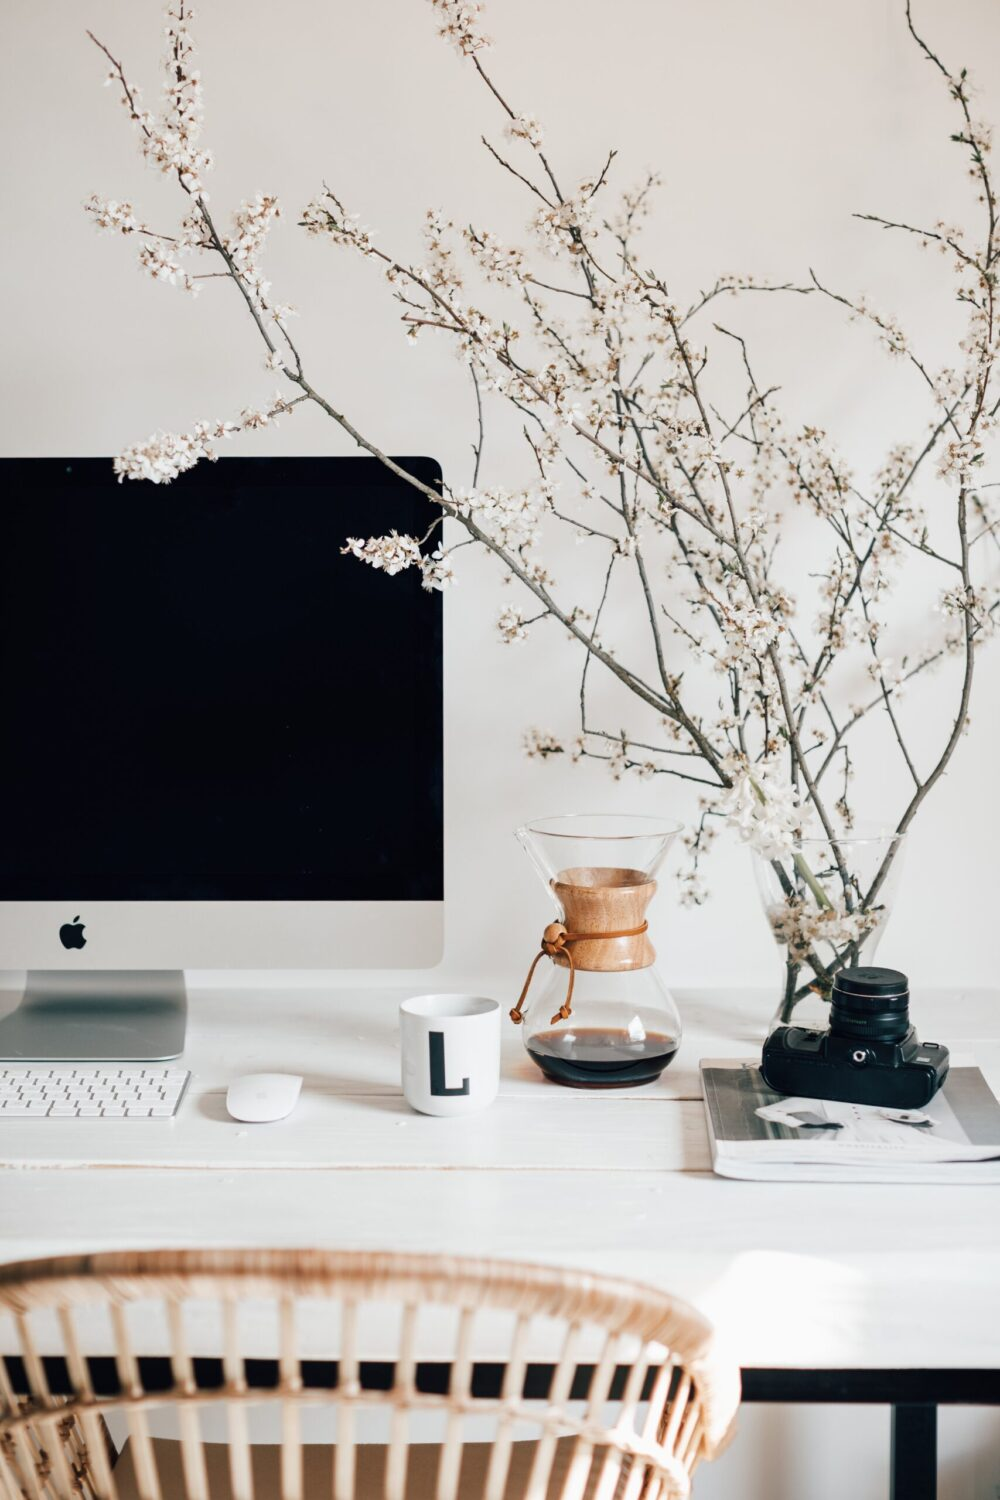 The Most Effective Productivity Tips for the Working Mom